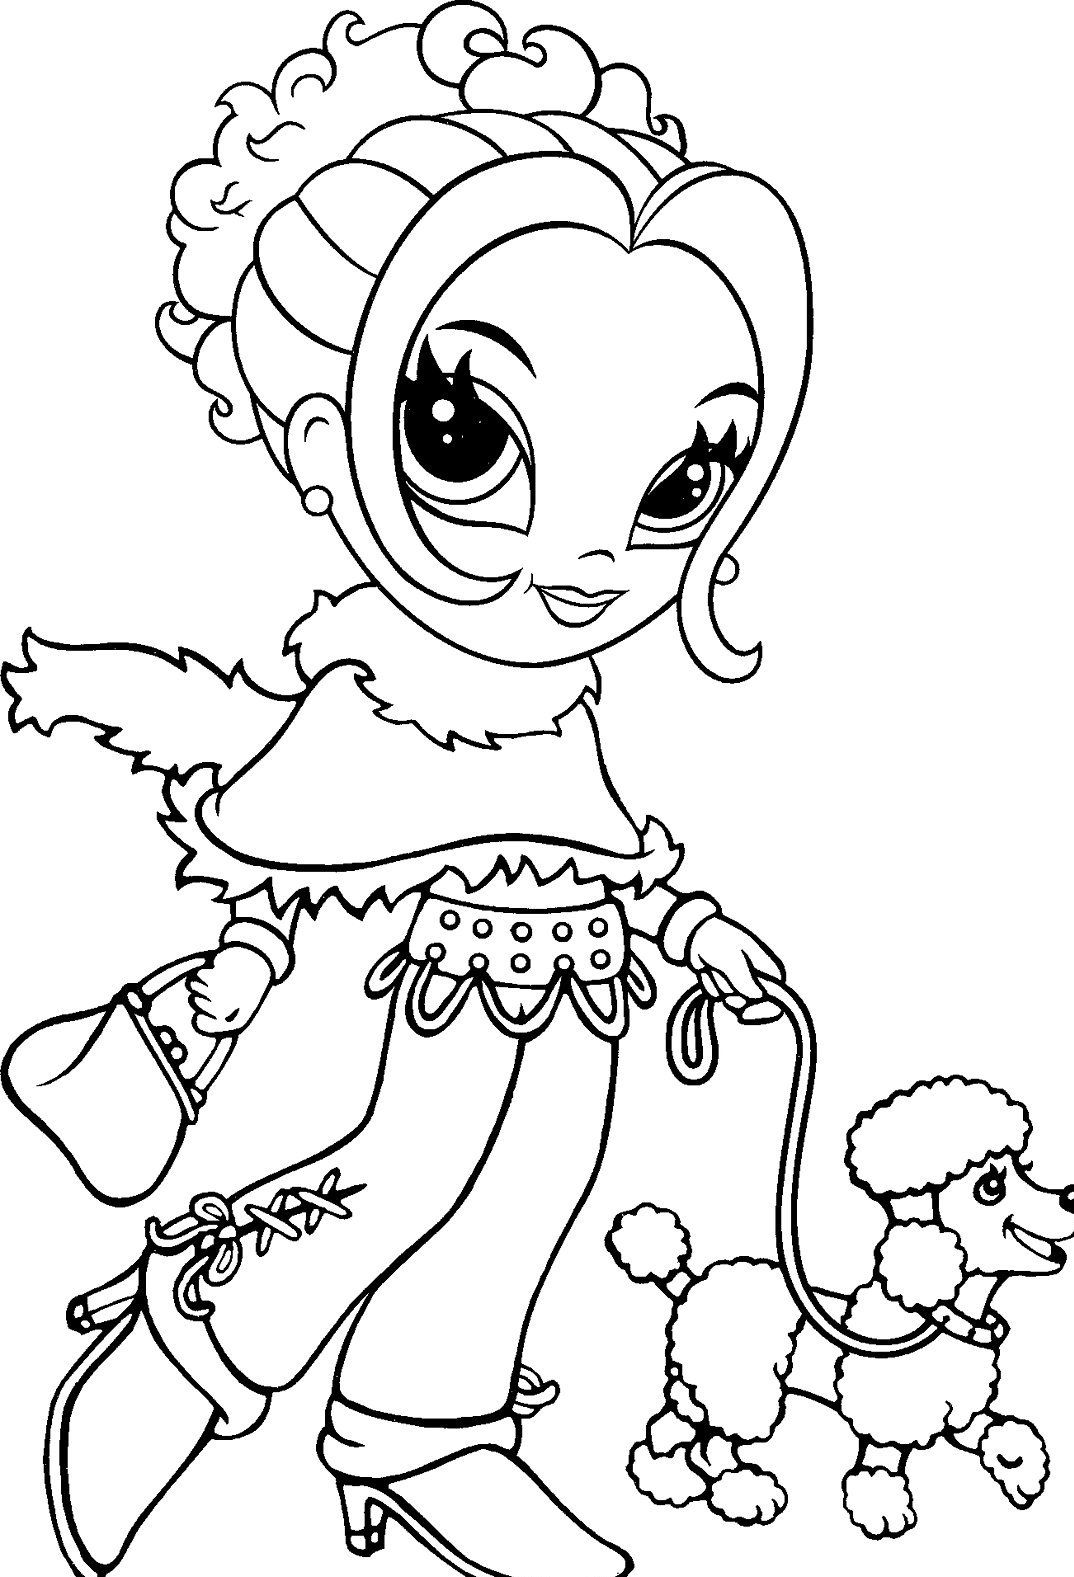 lisa franks coloring pages | Lisa Frank Colouring Pages Printable | Coloring pages ...